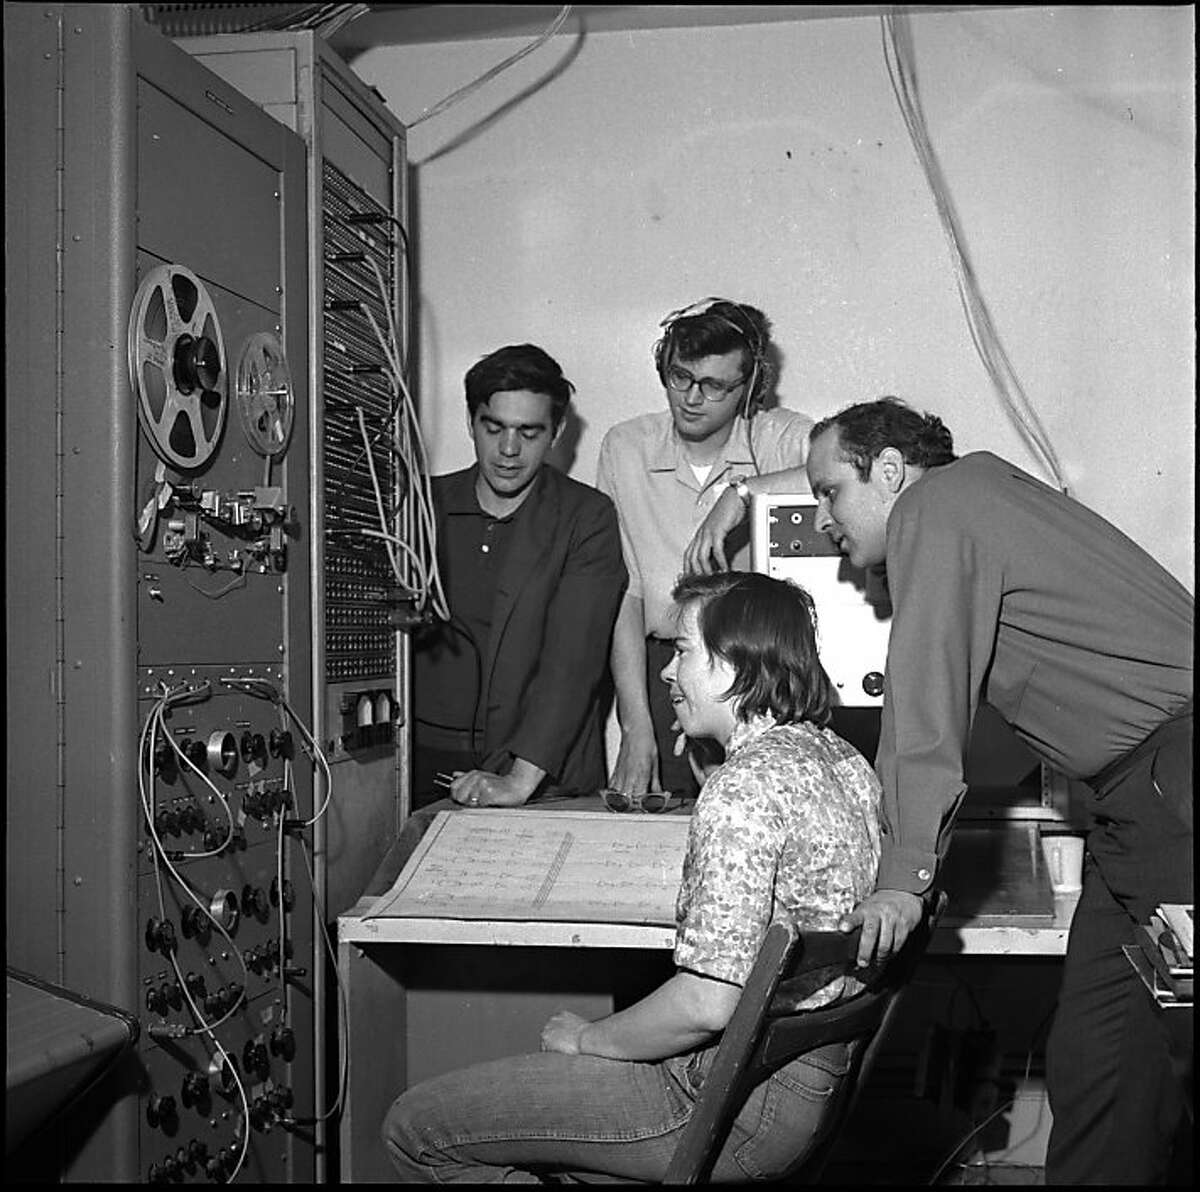 TAPEMUSIC-29MAR1964-AF - Ramon Sender, Mike Callahan, Morton Subotnick, Pauline Oliveros, at the San Francisco Tape Music Center, with all sorts of sound generators. Tape Center wants $1200 to transform itself from a local into and international institution. Photo by Art Frisch